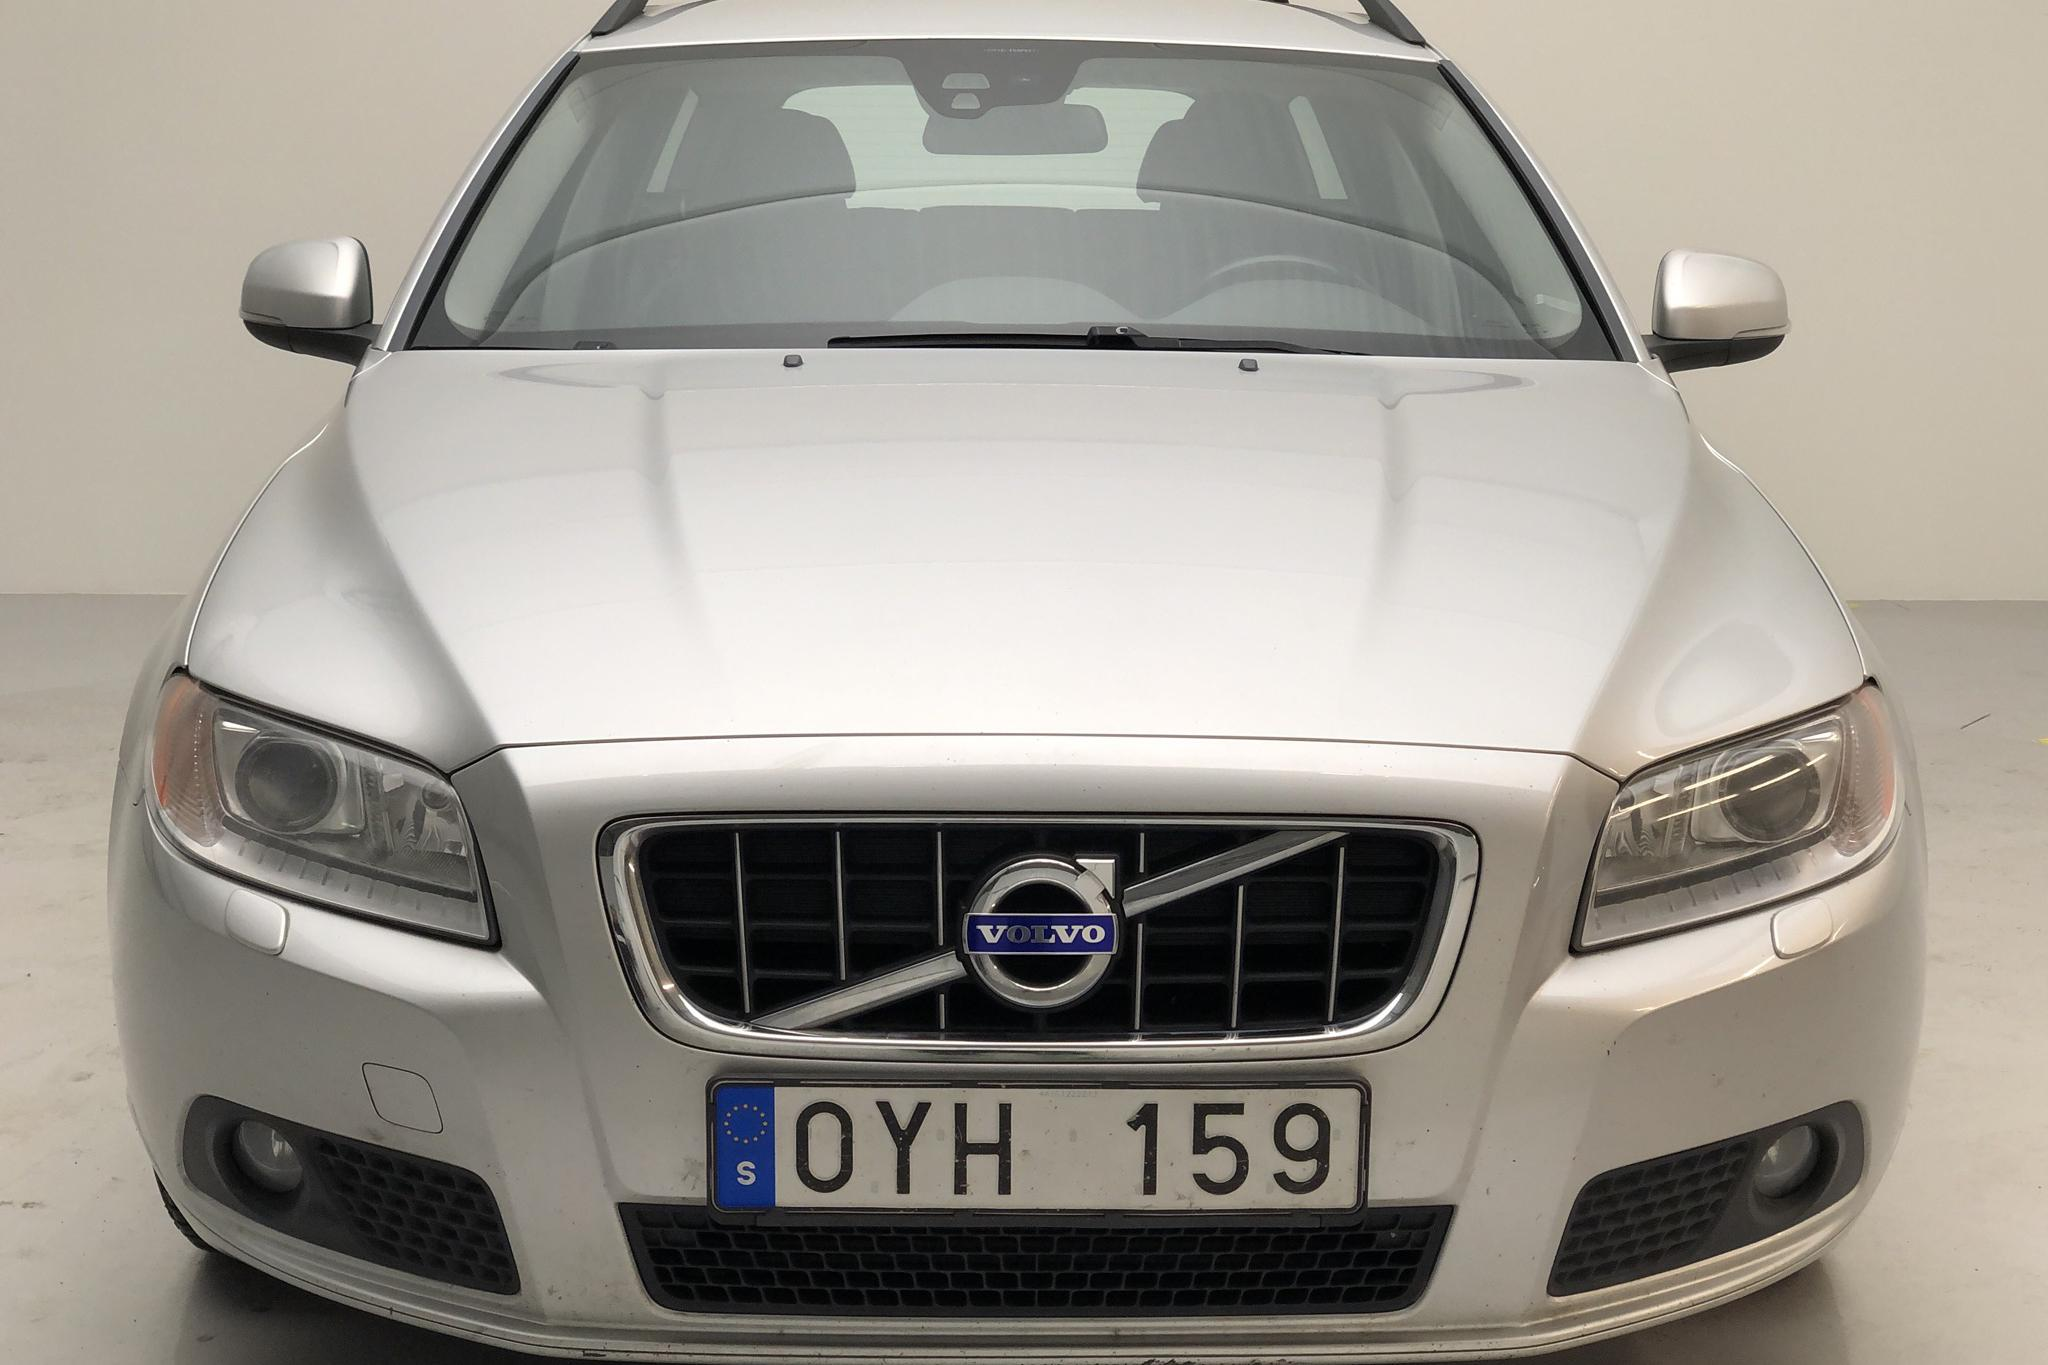 Volvo V70 II 1.6D DRIVe (115hk) - 276 860 km - Manual - Light Grey - 2012